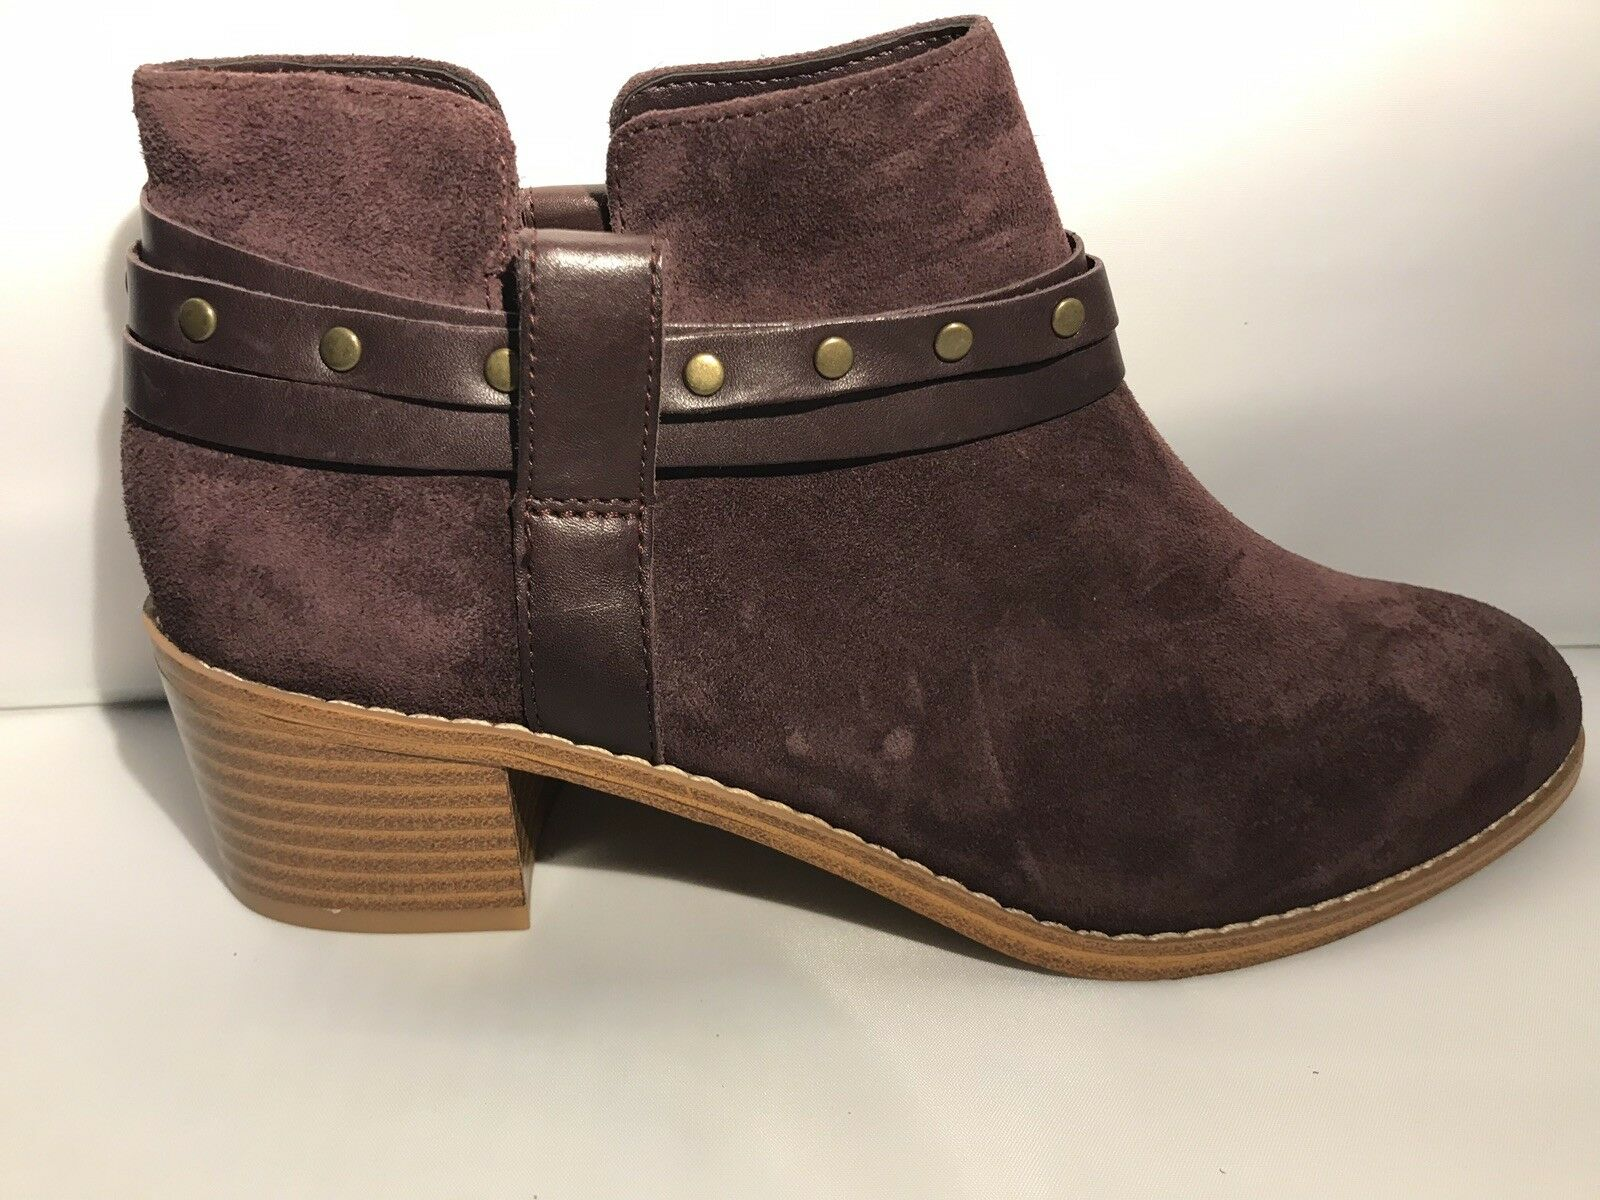 Clarks ' Breccan Shine' Aubergine Leather Ankle Ladies Boots, Size 4D